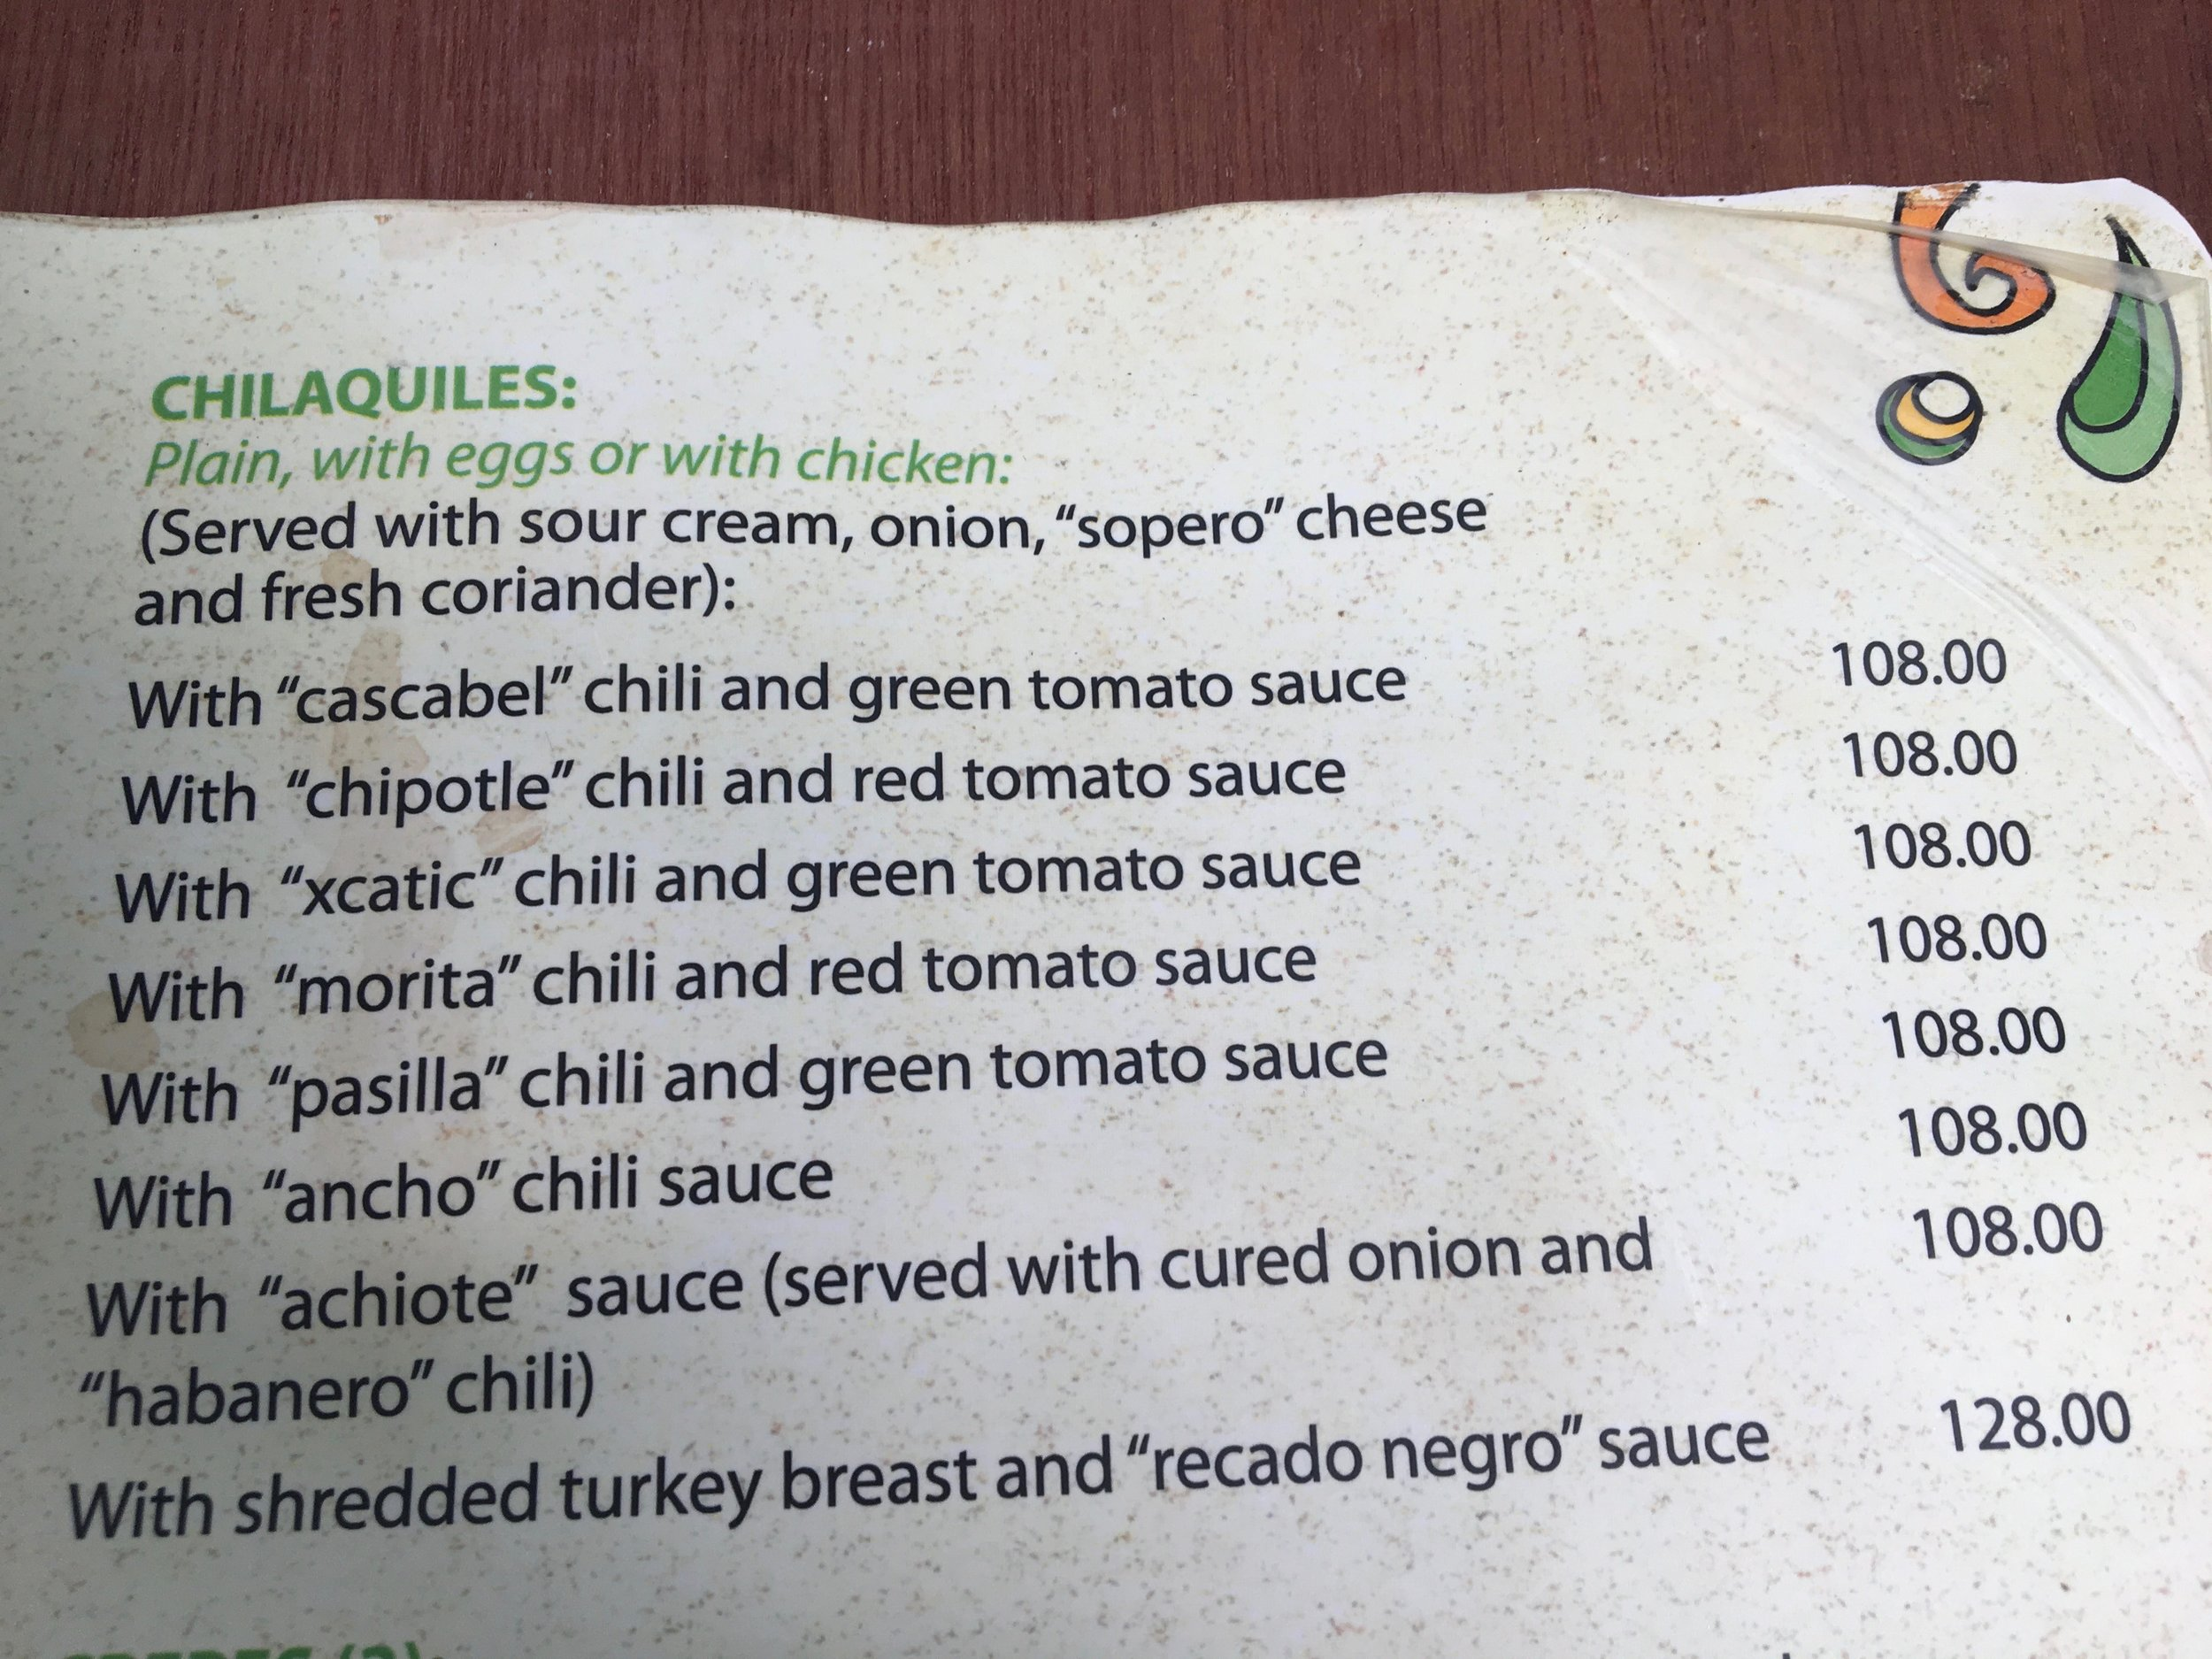 I just liked how they highlighted each of their chili's unique flavor which no one does here in the states but you can bet in the Yucatan, they want to highlight each of their chilis.